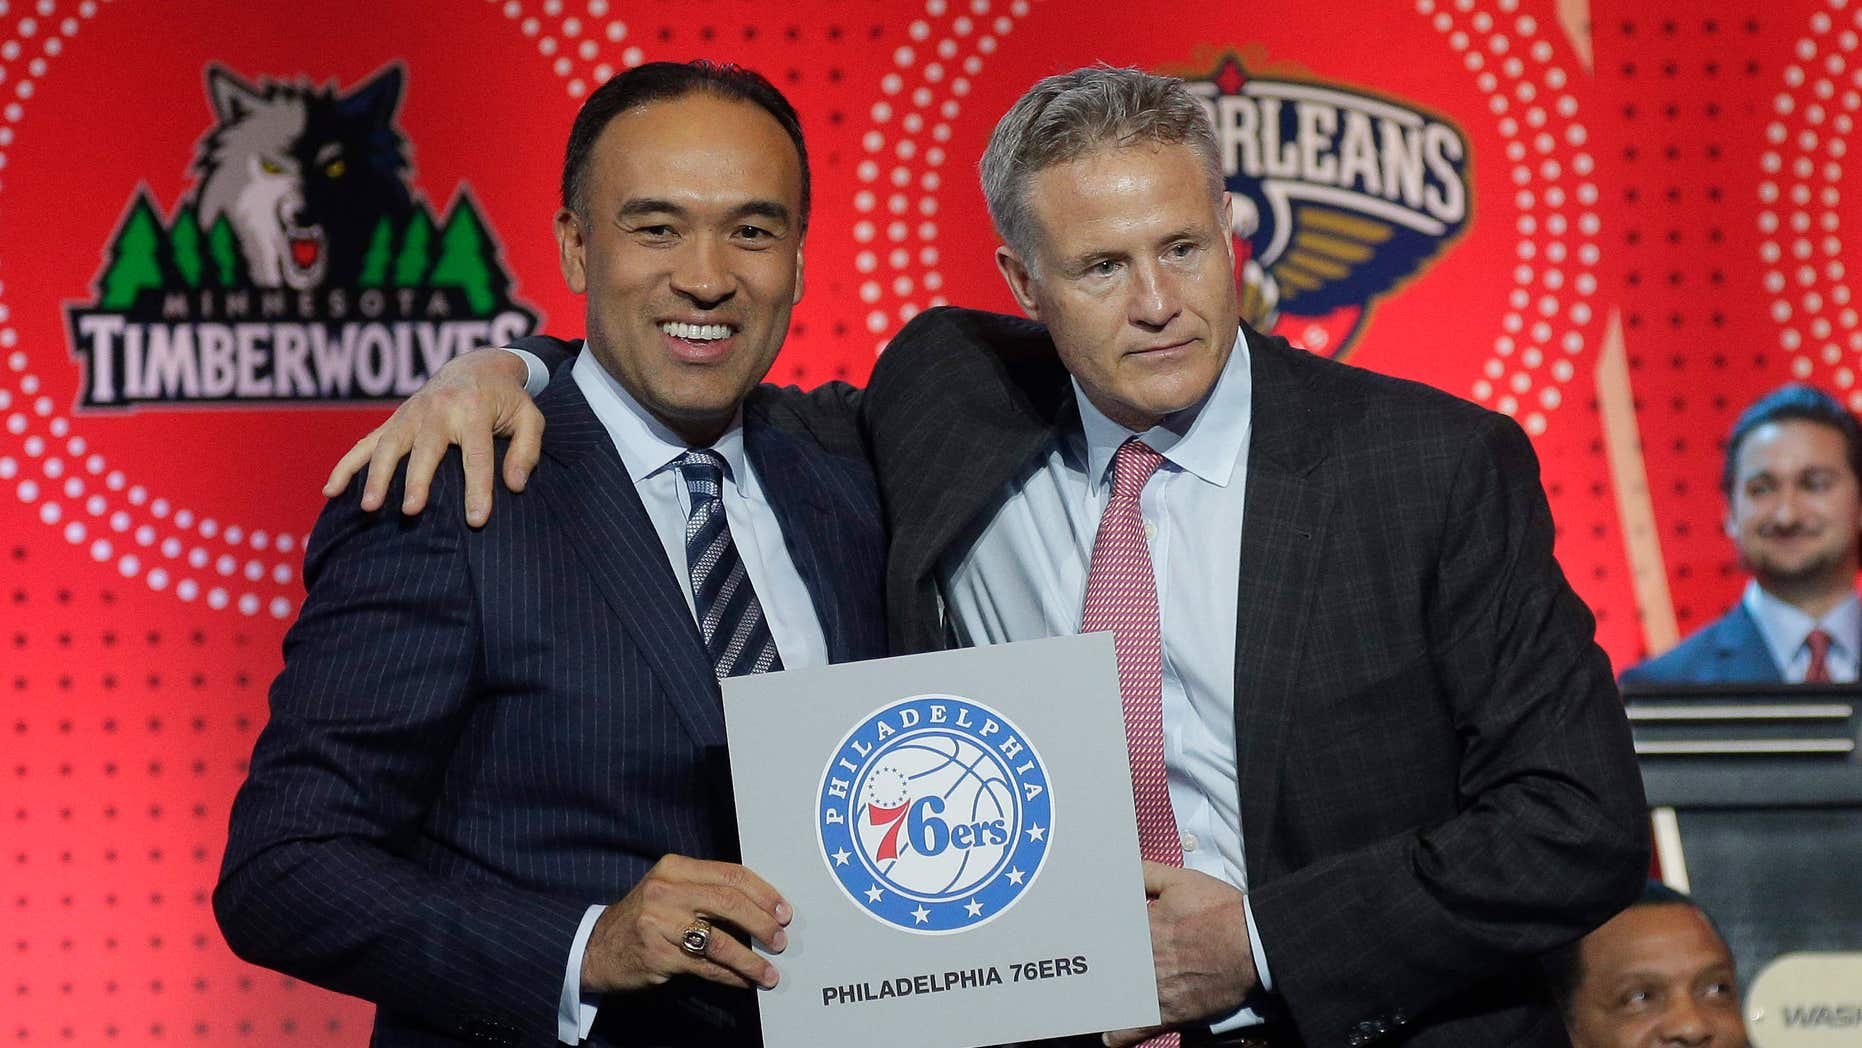 NBA deputy commissioner Mark Tatum, left, poses for a photo with Philadelphia 76ers head coach Brett Brown during the NBA basketball draft lottery, Tuesday, May 17, 2016, in New York.